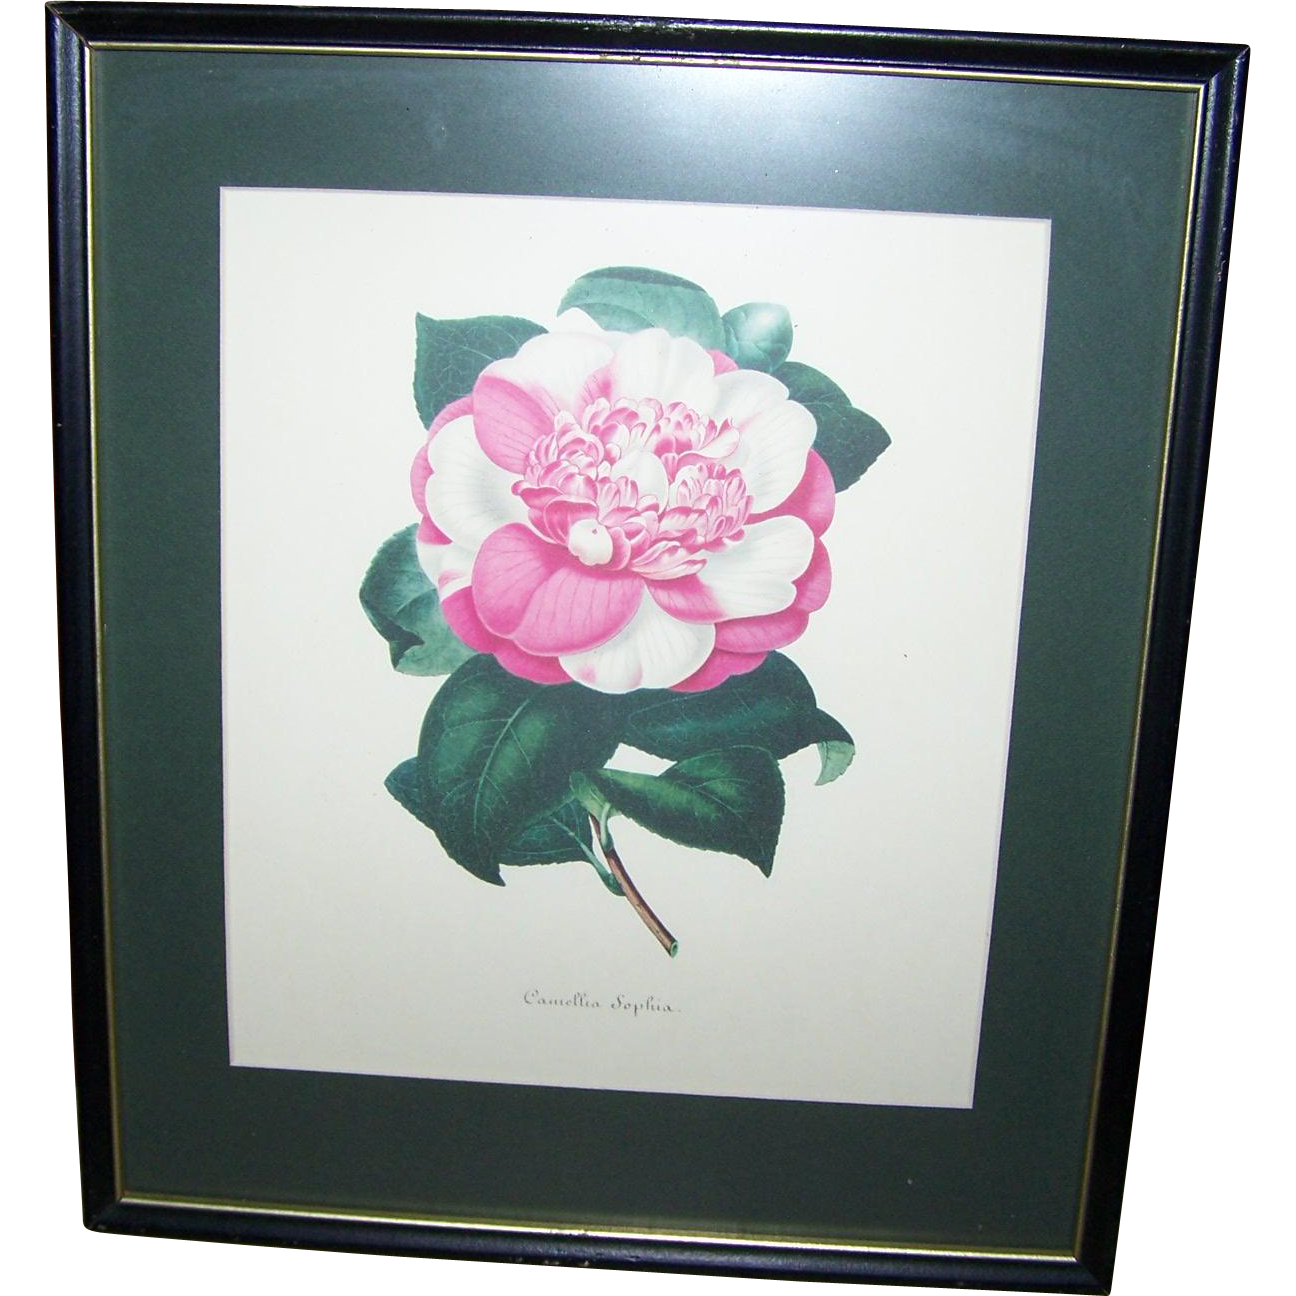 A Vintage Botanical Framed Print Lovely Wall Art Camellia Sophia